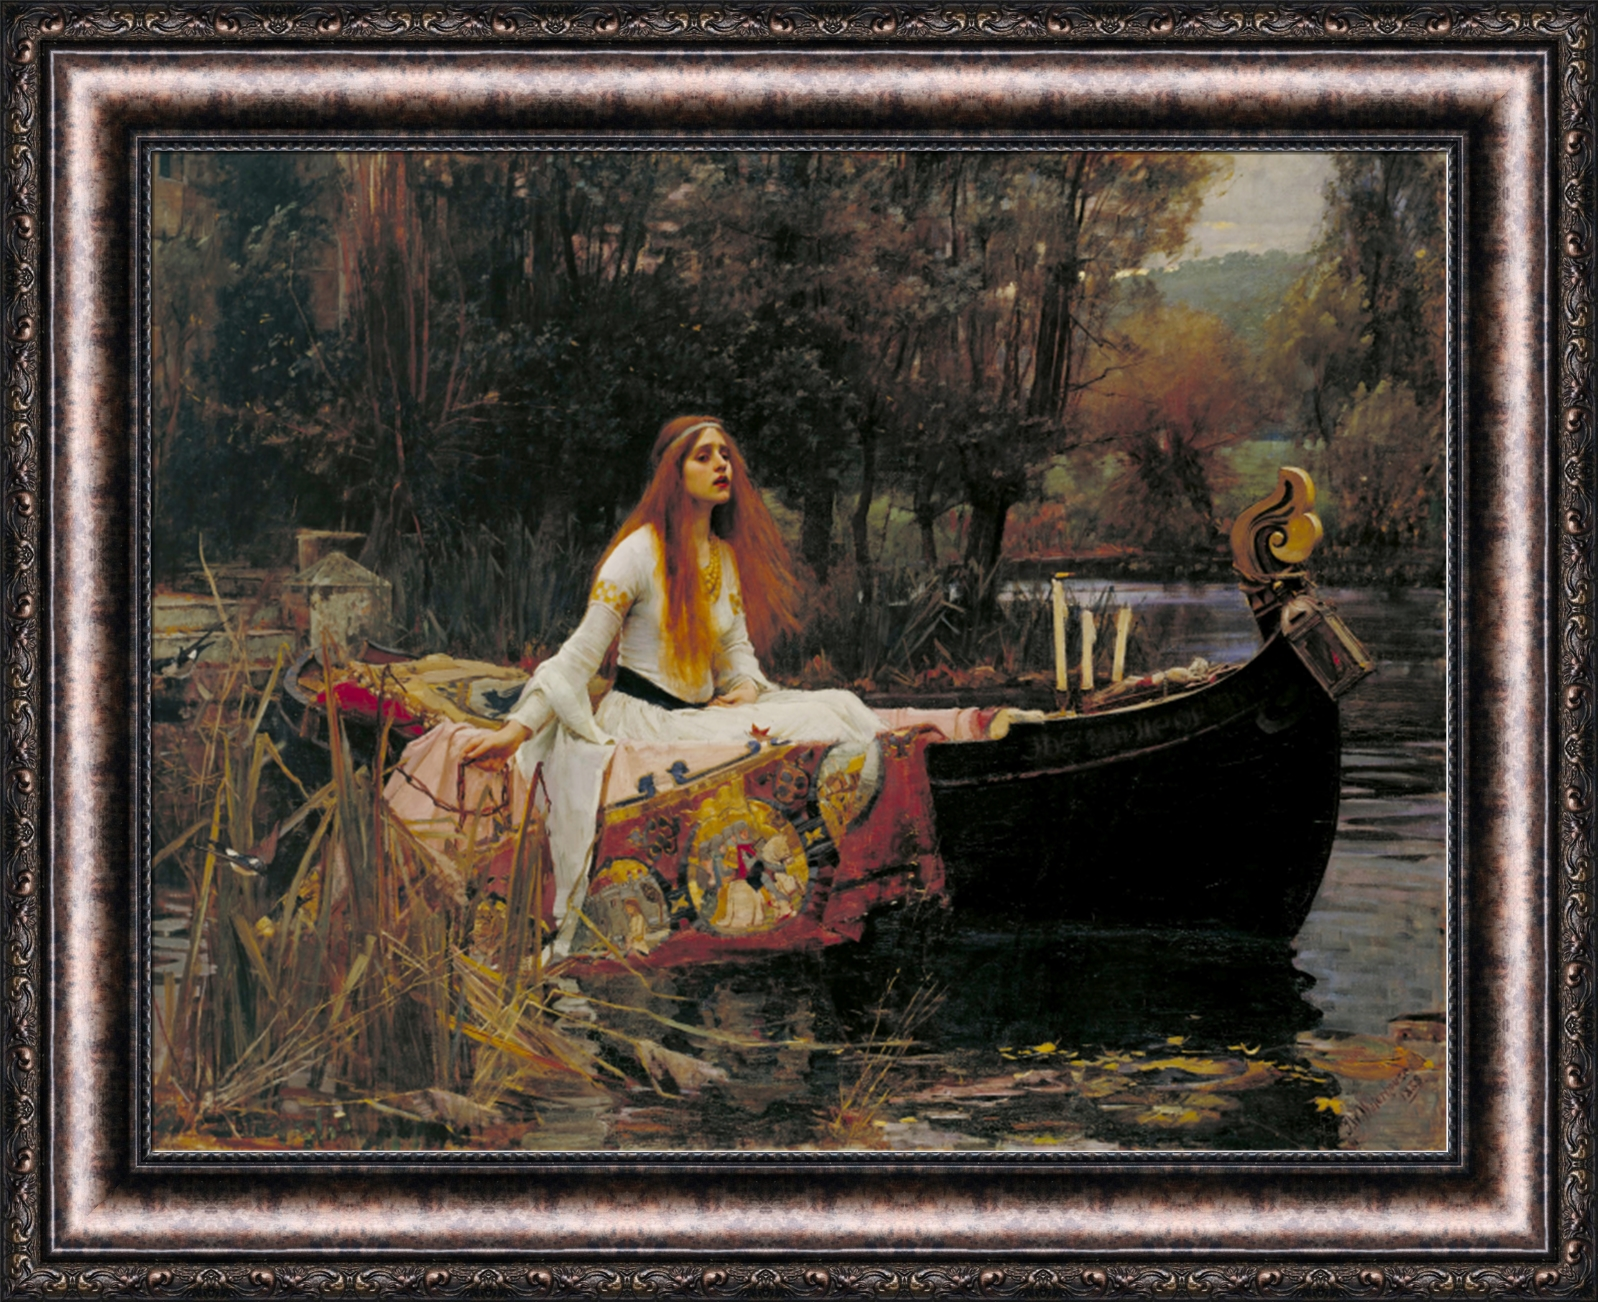 john william waterhouse the lady of shalott framed canvas 33 5 x27 v01 17 ebay. Black Bedroom Furniture Sets. Home Design Ideas